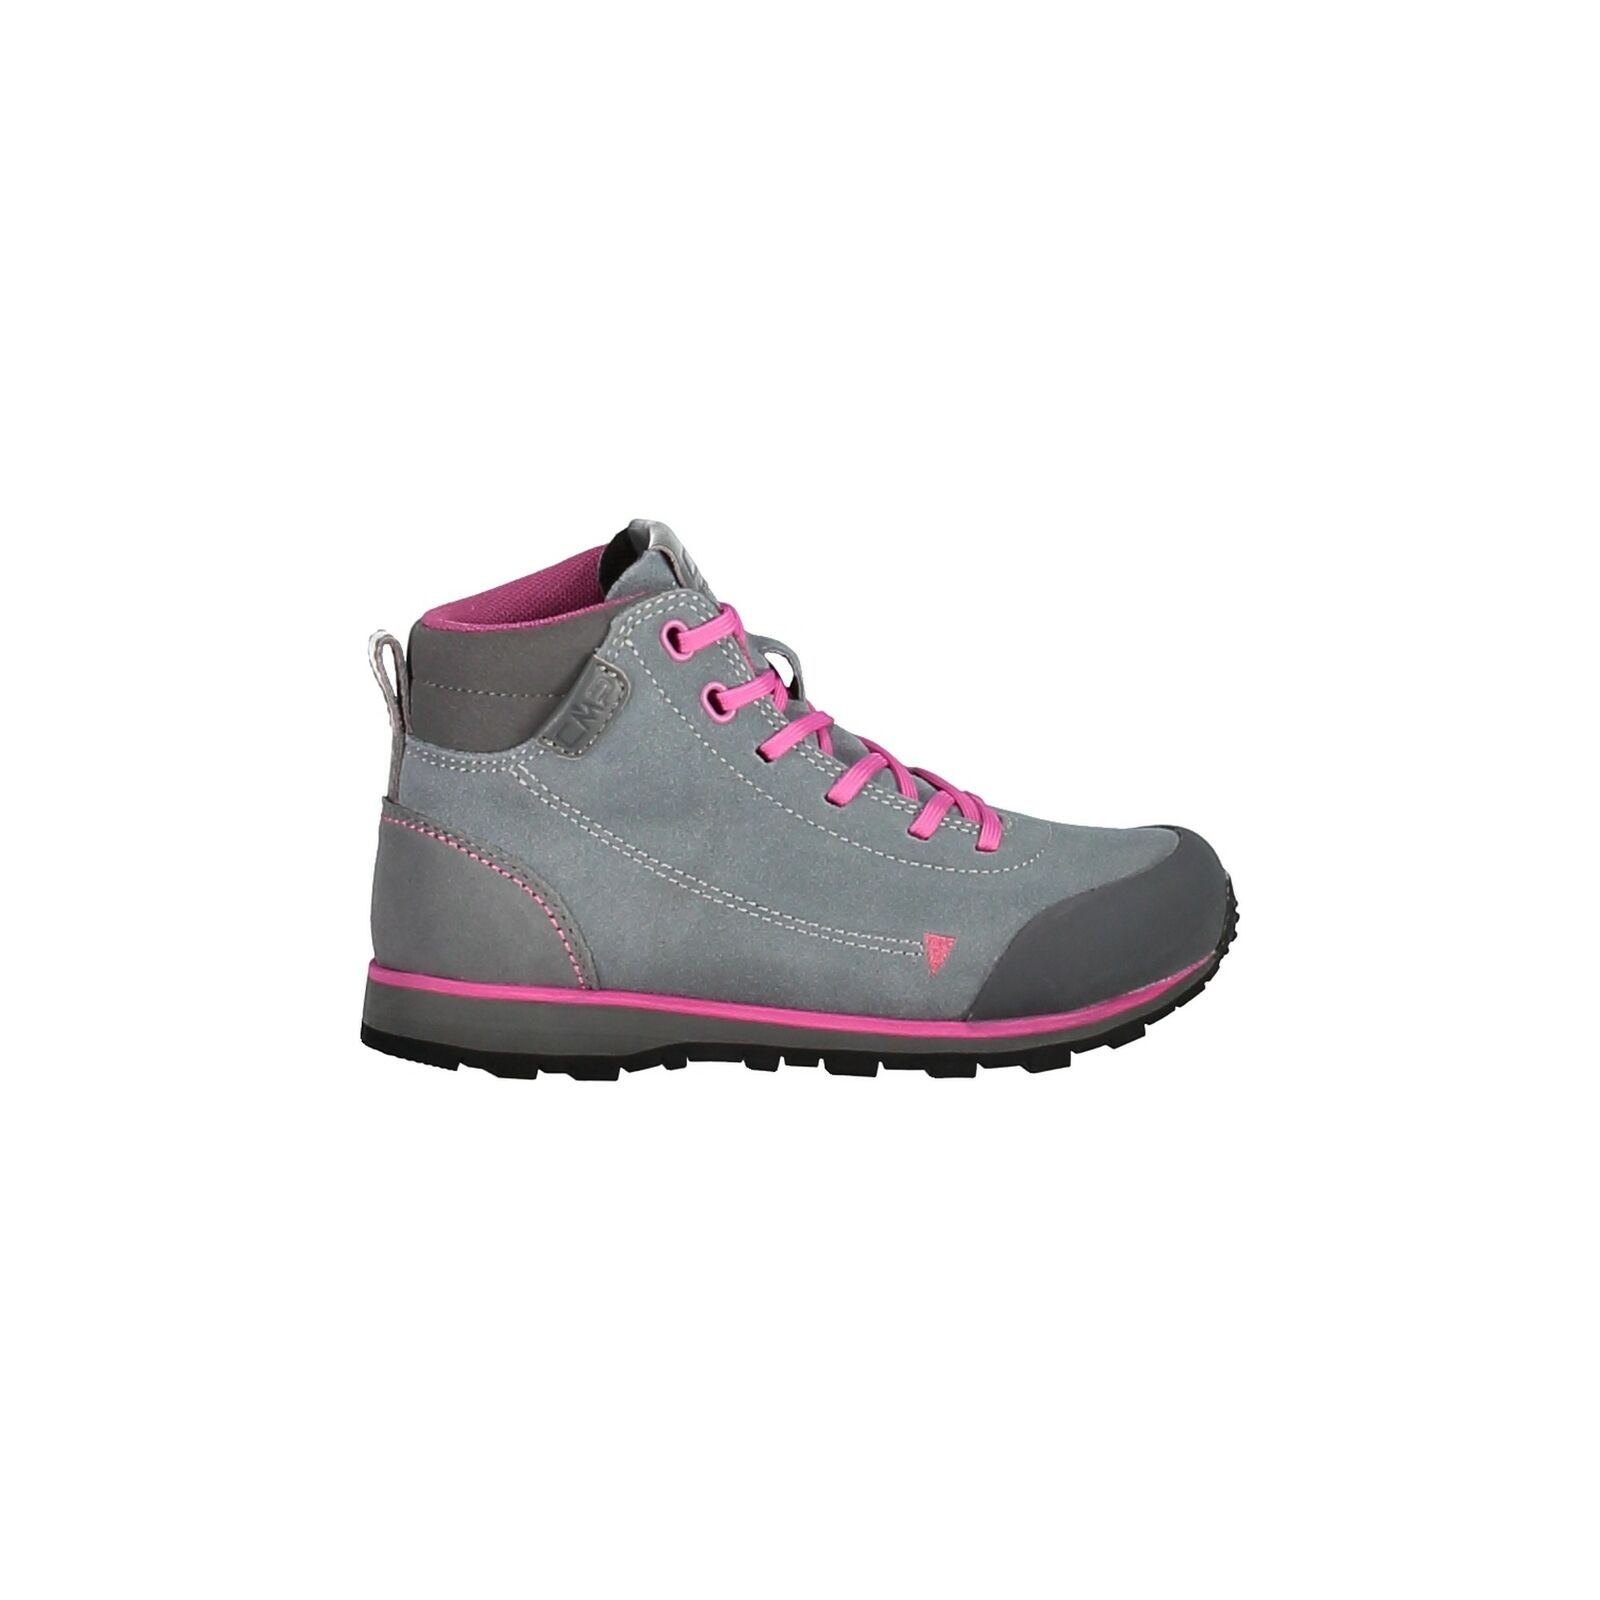 CMP Hiking shoes outdoorschuh Kids  ELETTRA Mid Hiking shoes Light Grey Plain All  wholesale price